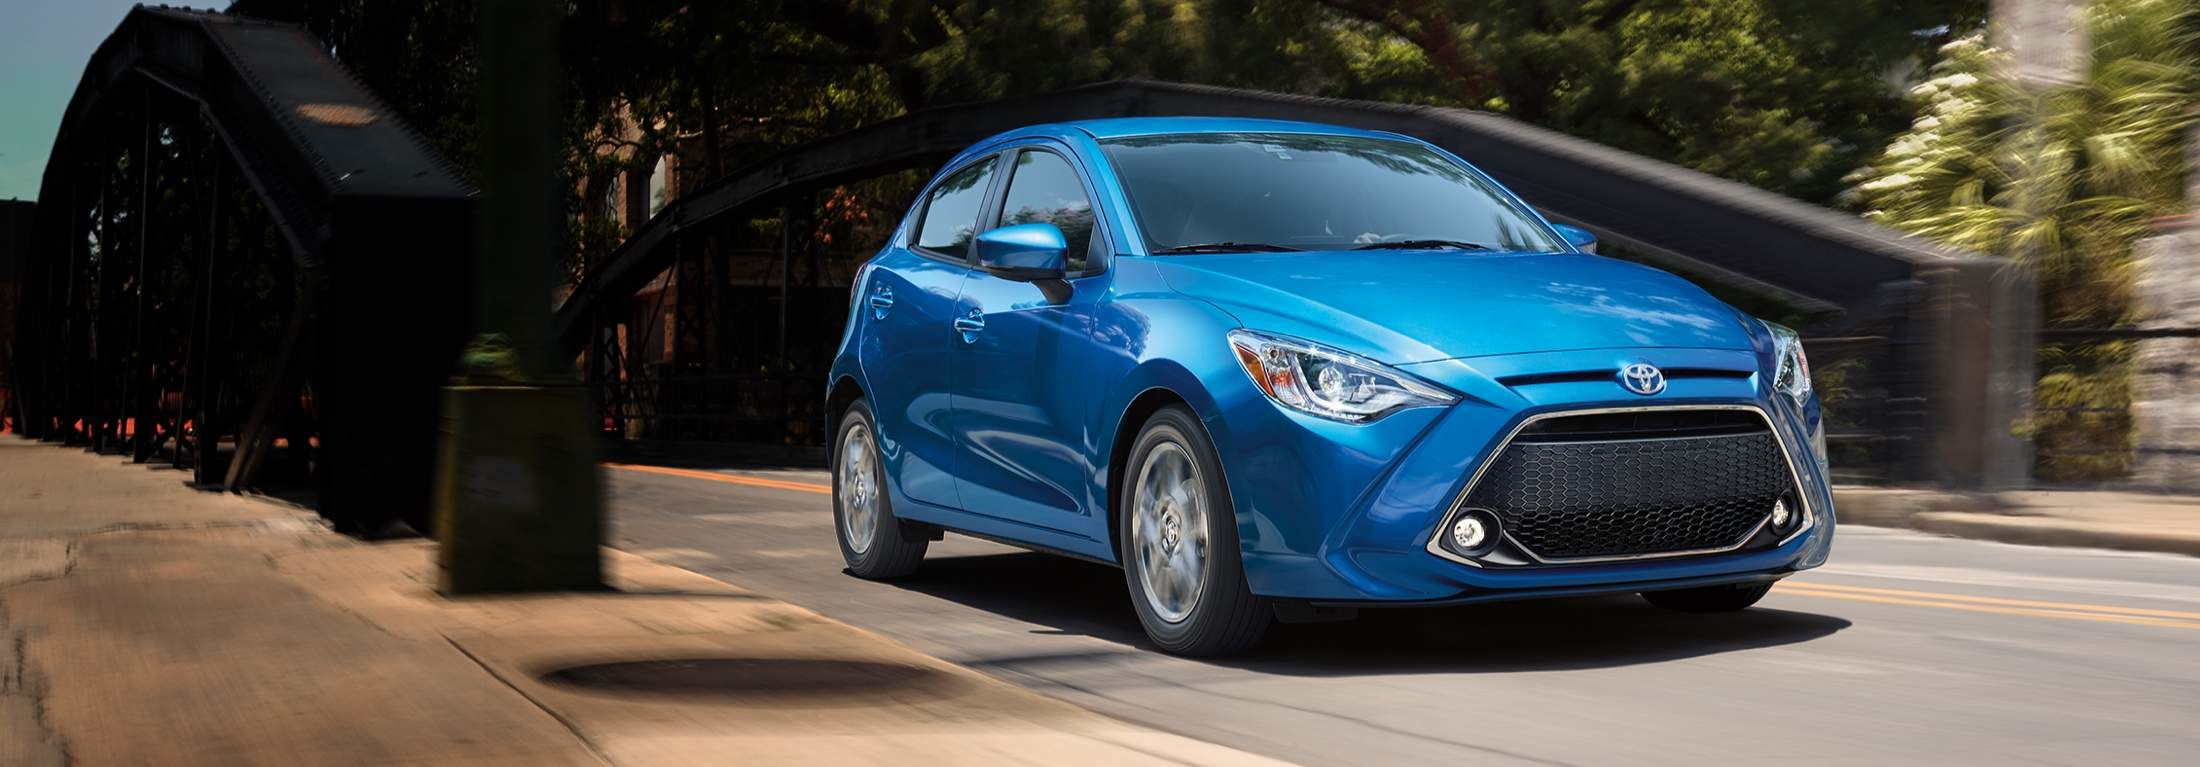 Yaris hatchback 2020